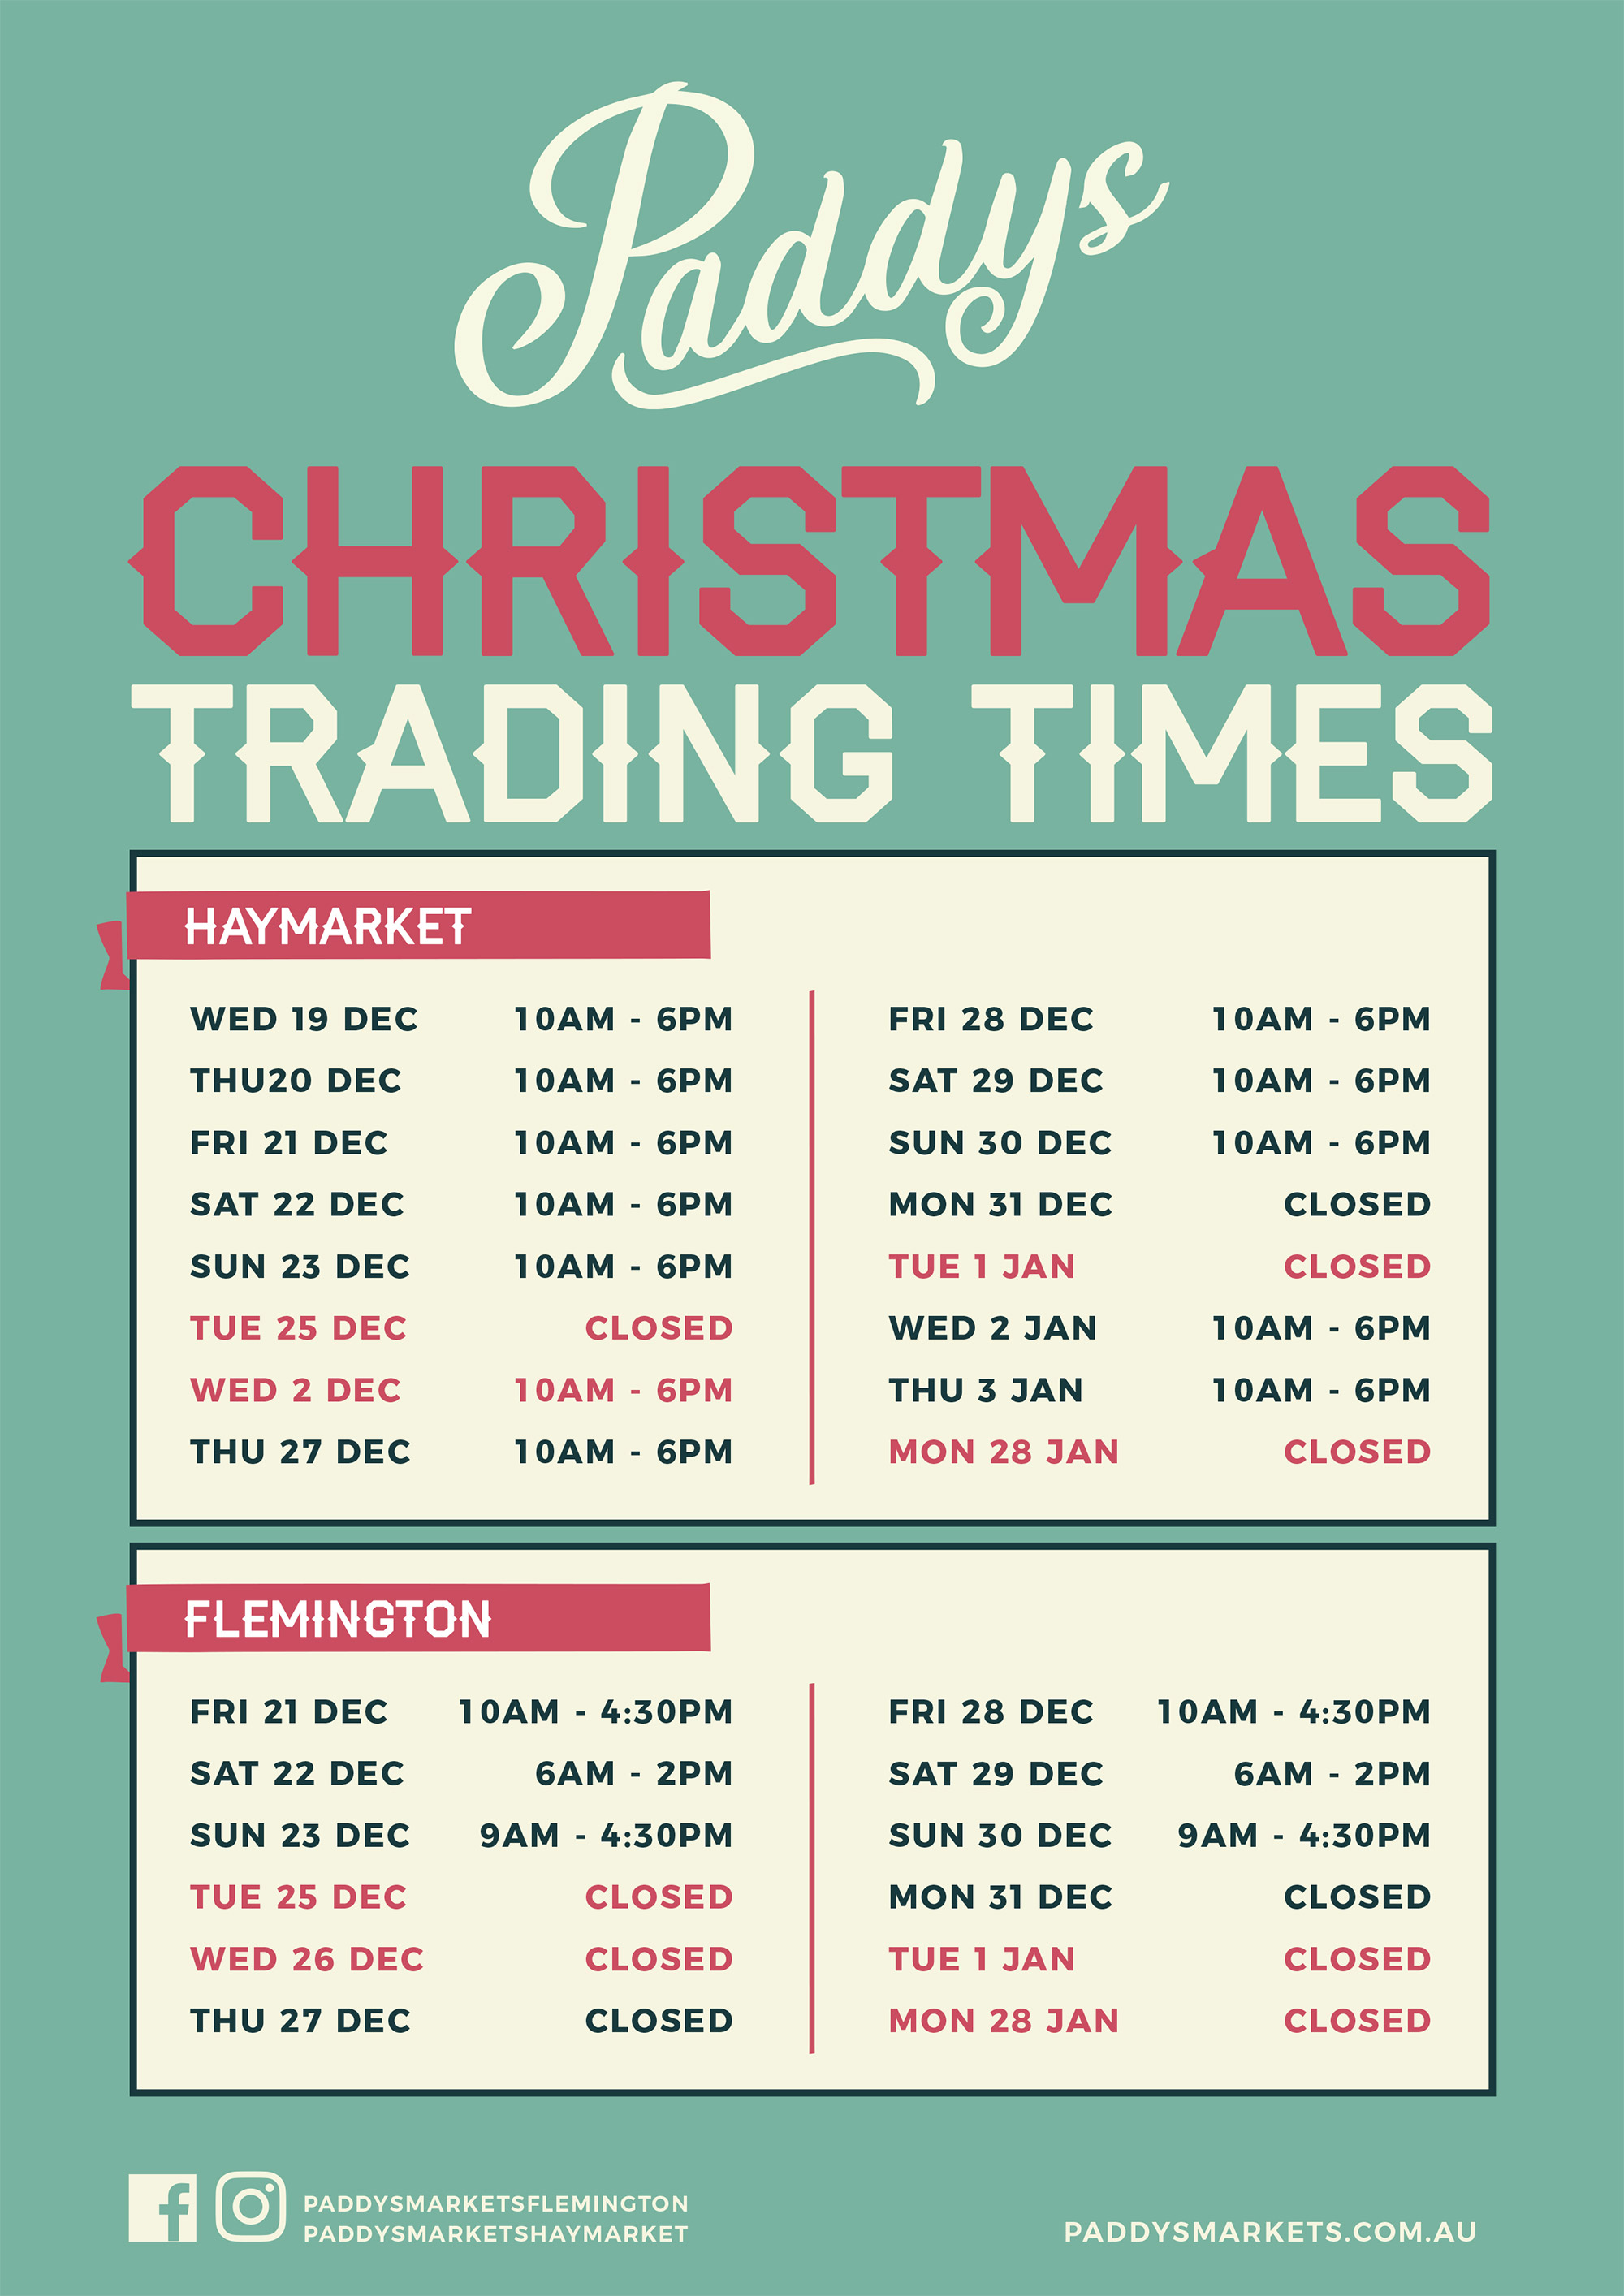 Paddy's Christmas Trading Times 2018/2019